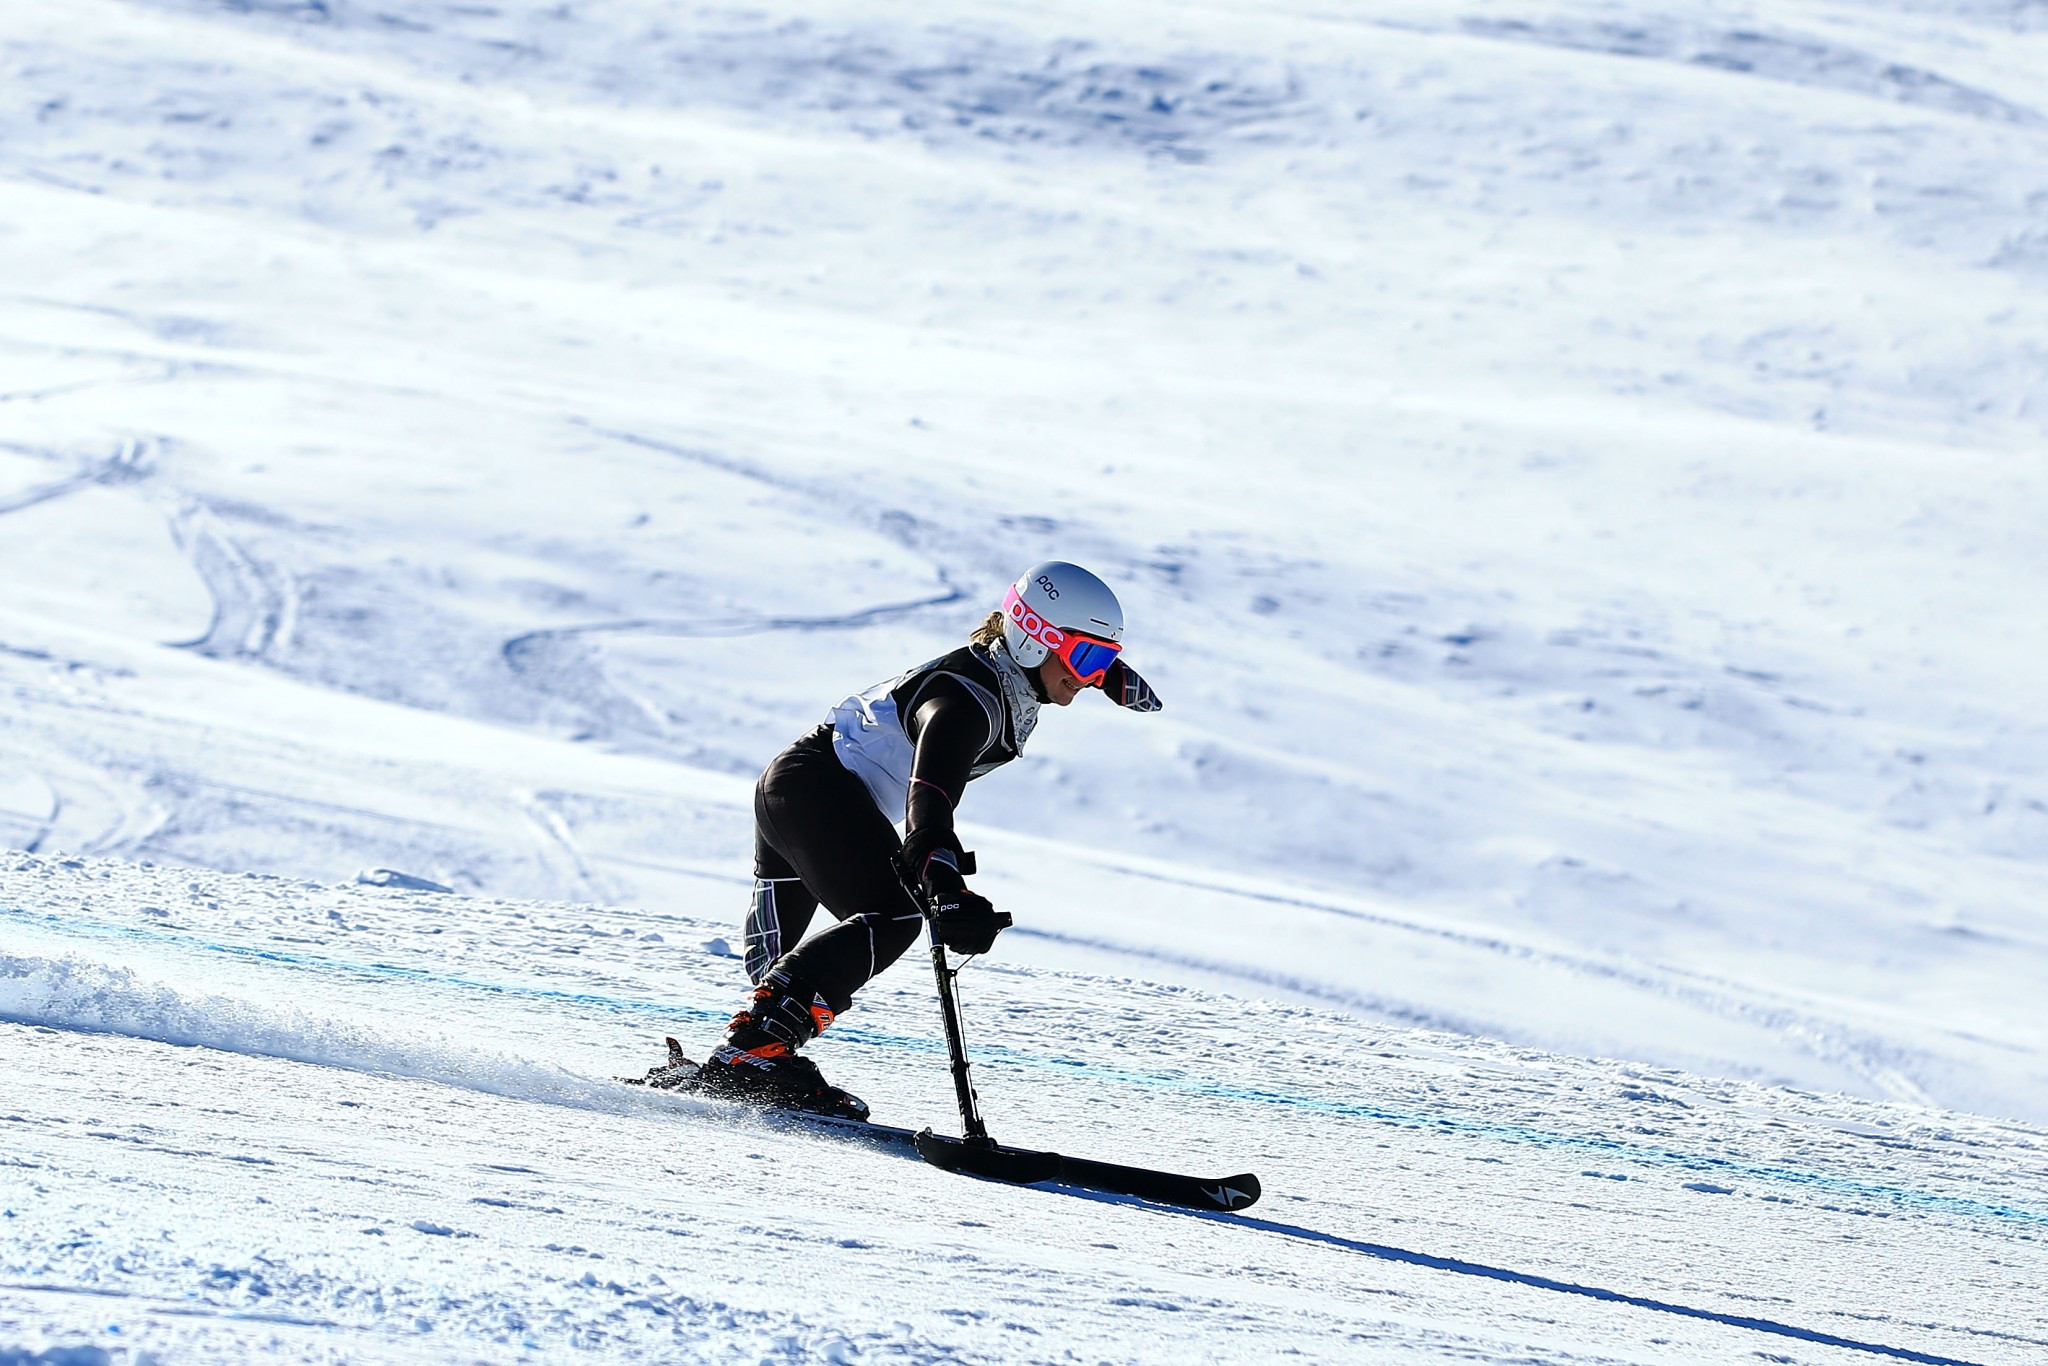 Skier postpones surgery in bid to keep Paralympic bid alive